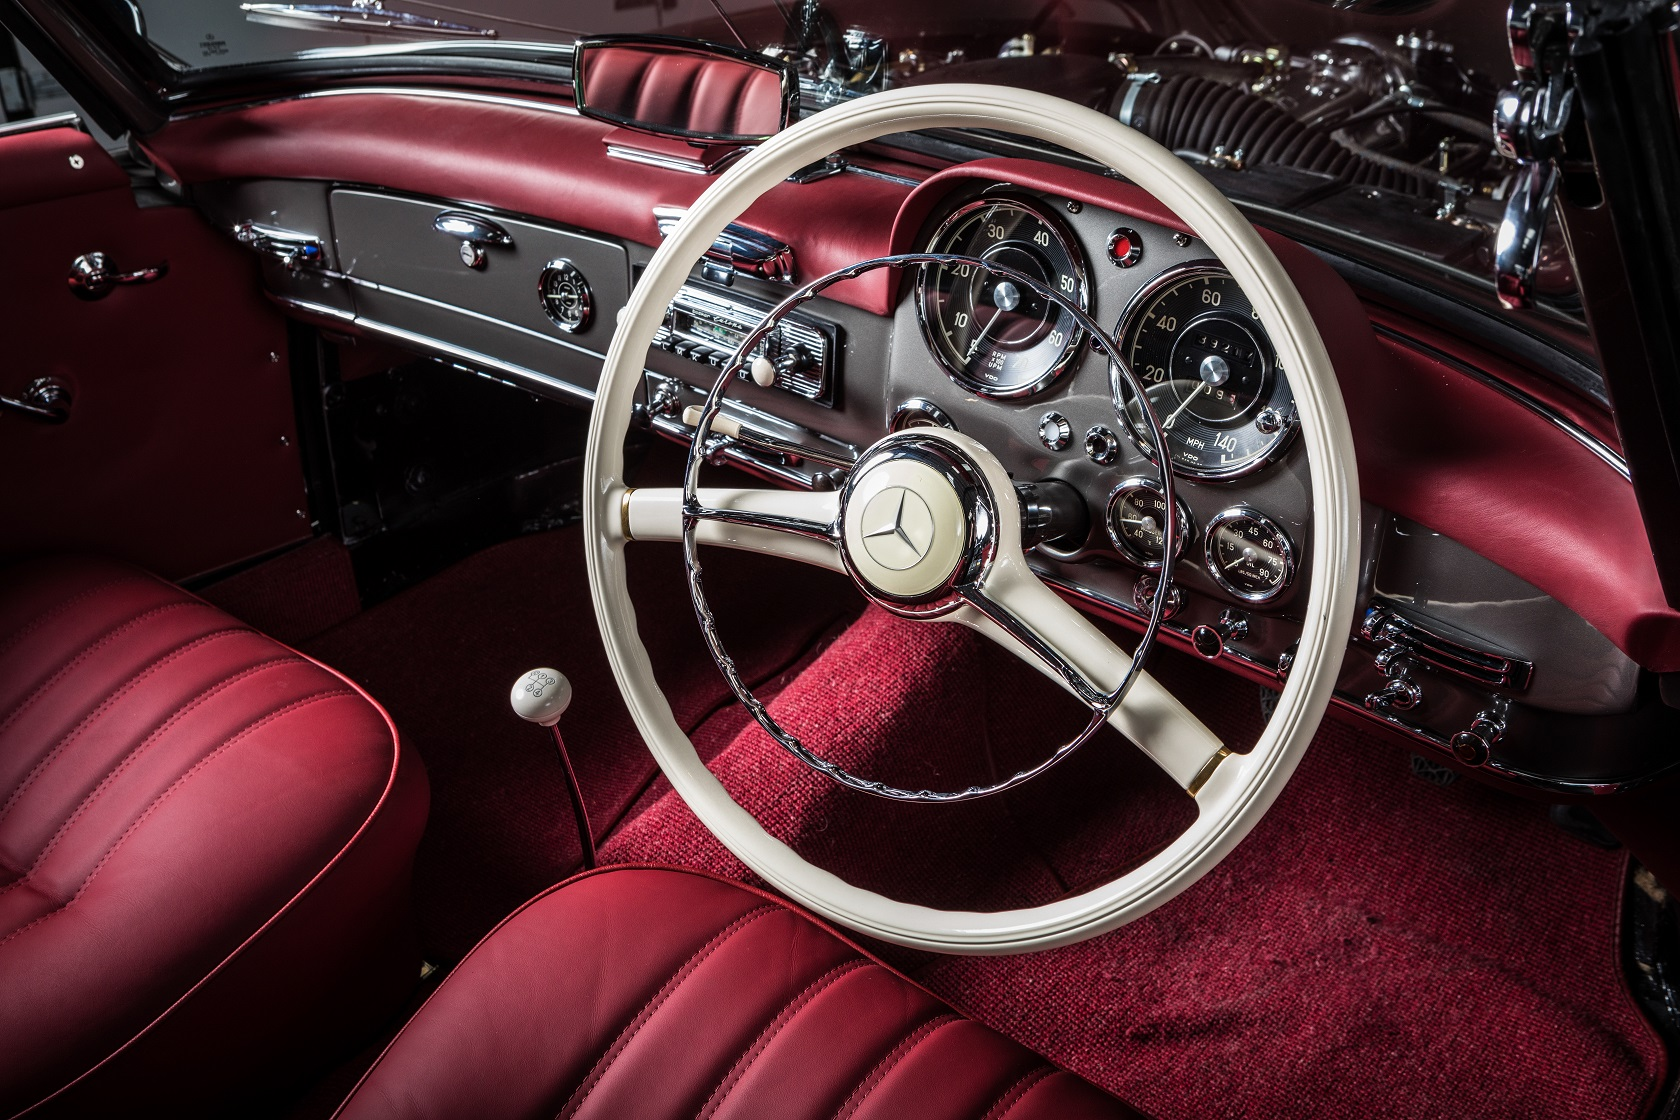 Hemmels W121 190SL Steering wheel